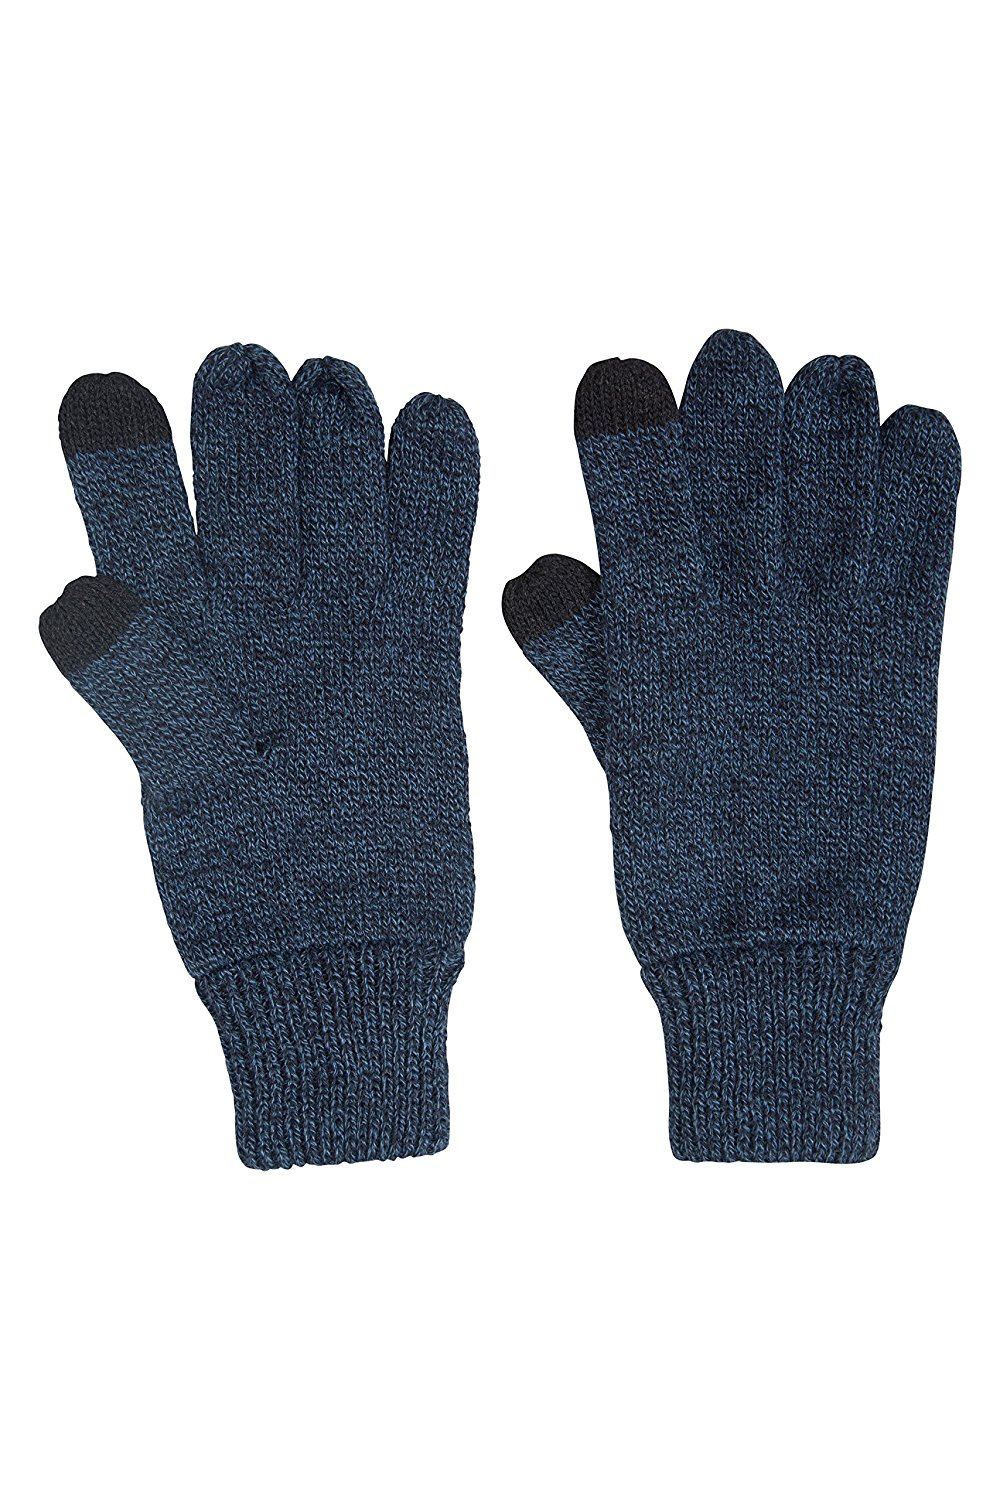 Mountain Warehouse Touch Screen Mens Knitted Gloves